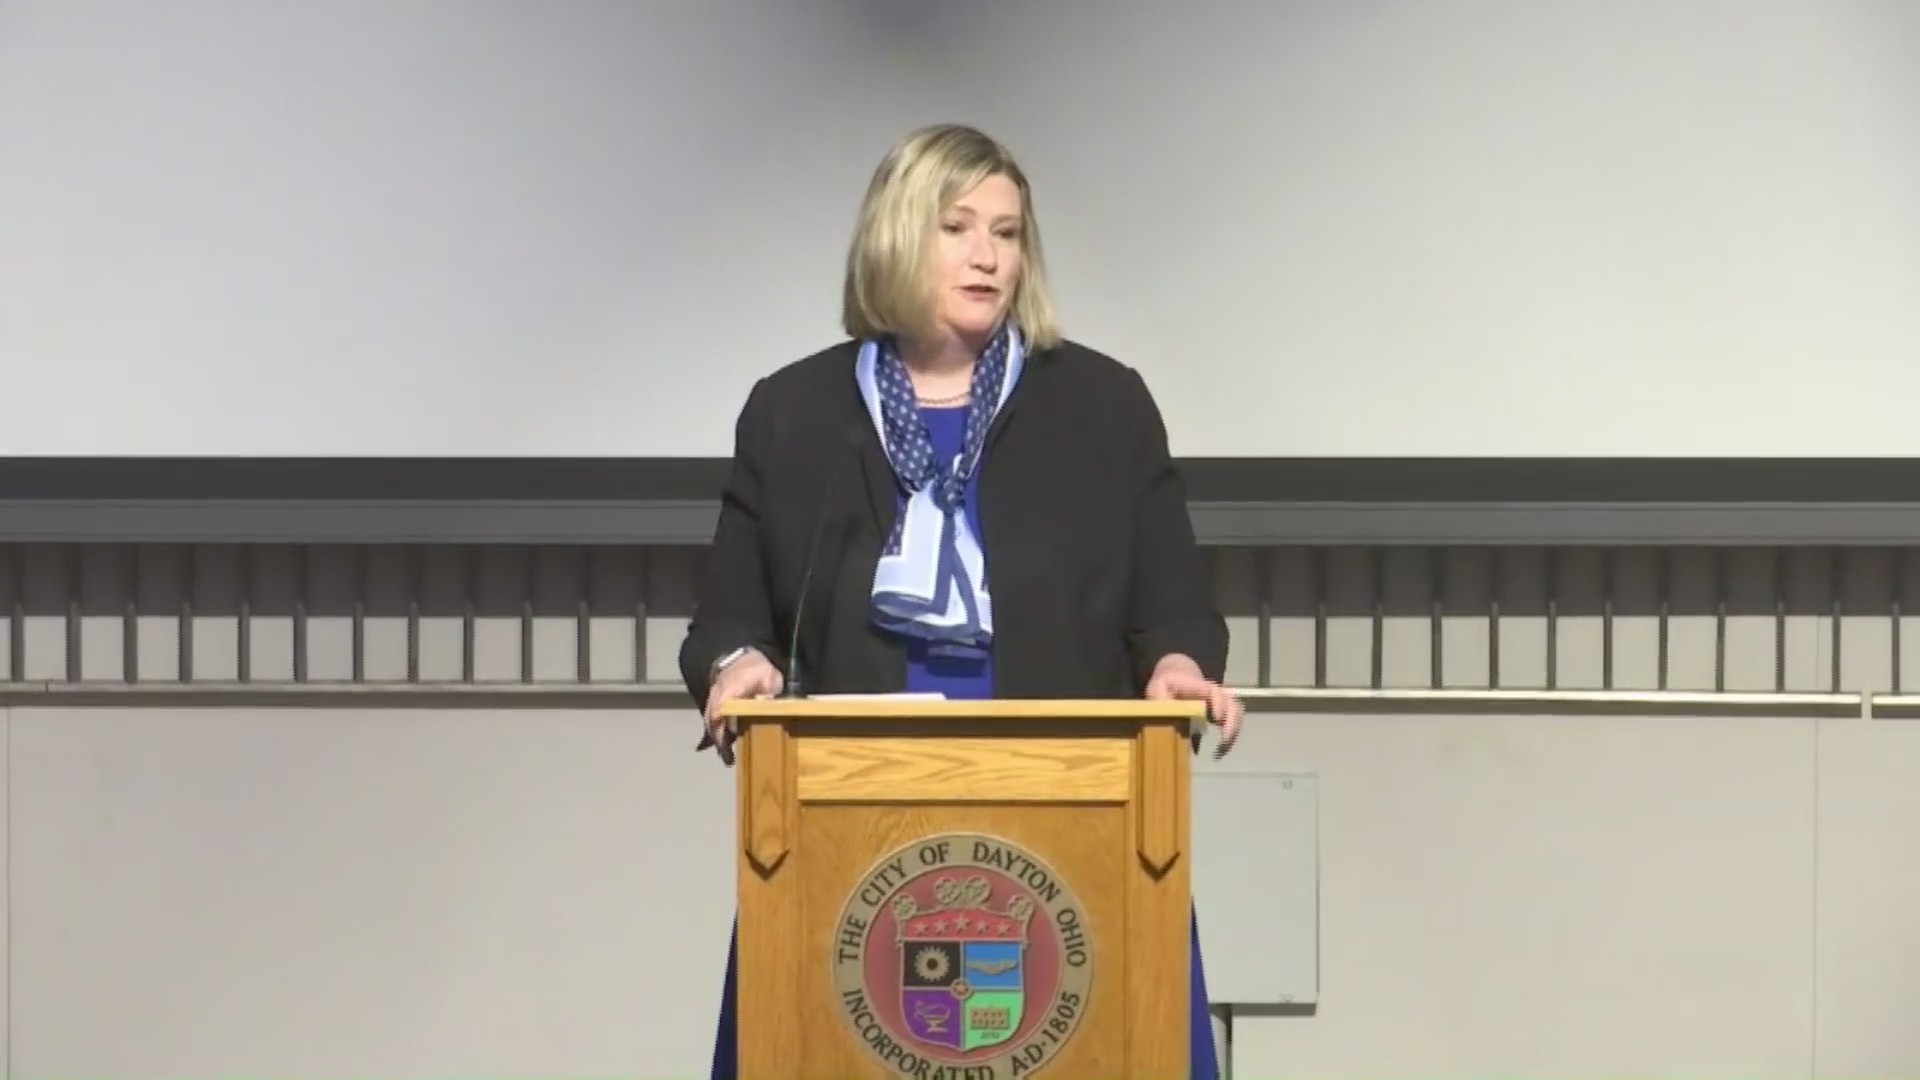 2-19 Nan Whaley State of the City